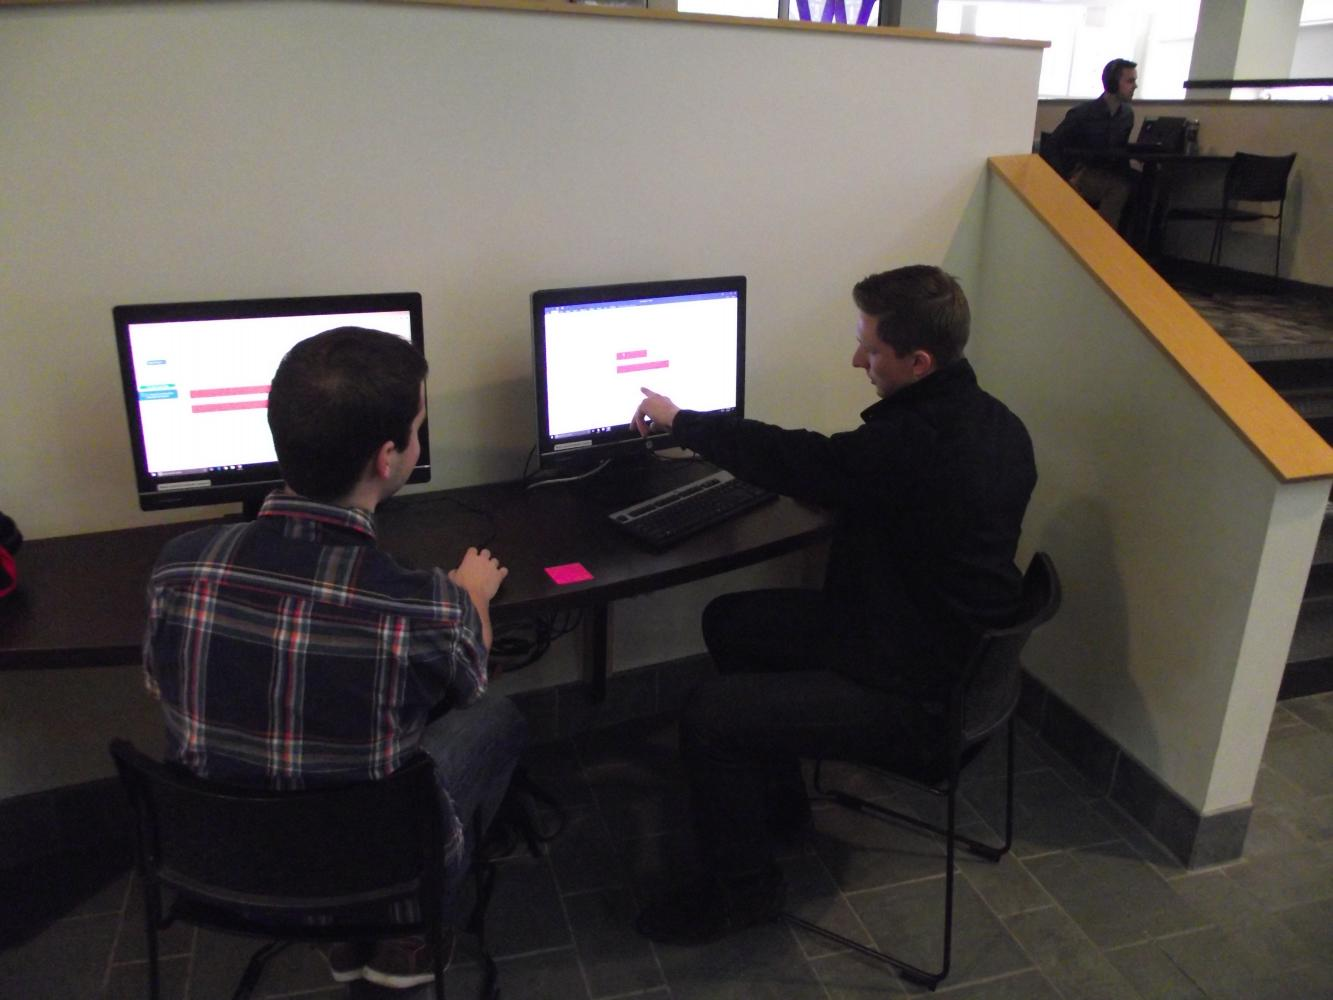 Seniors Jacques LaReau and Trevor Beckmann sift through vaccination research together in the UC.